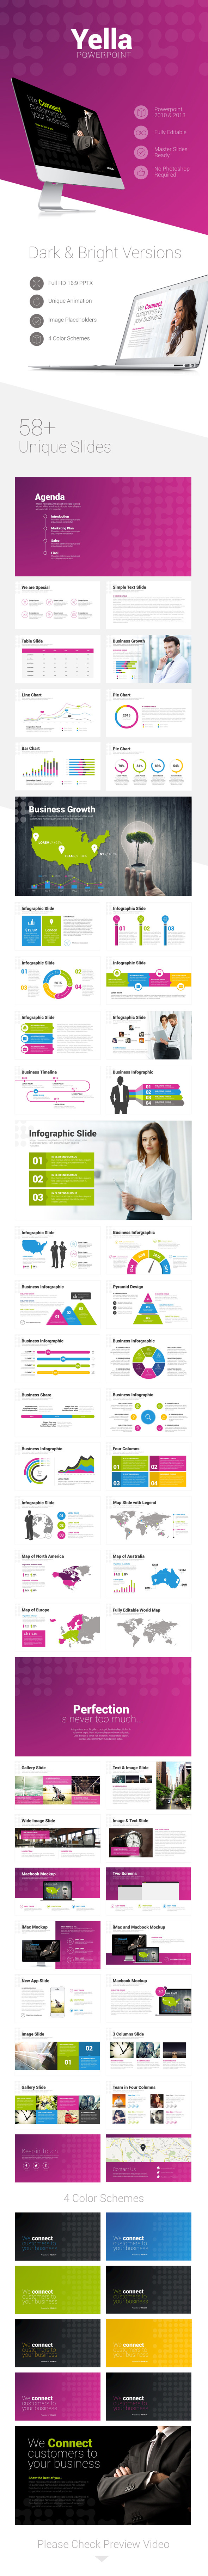 Yella Powerpoint Template